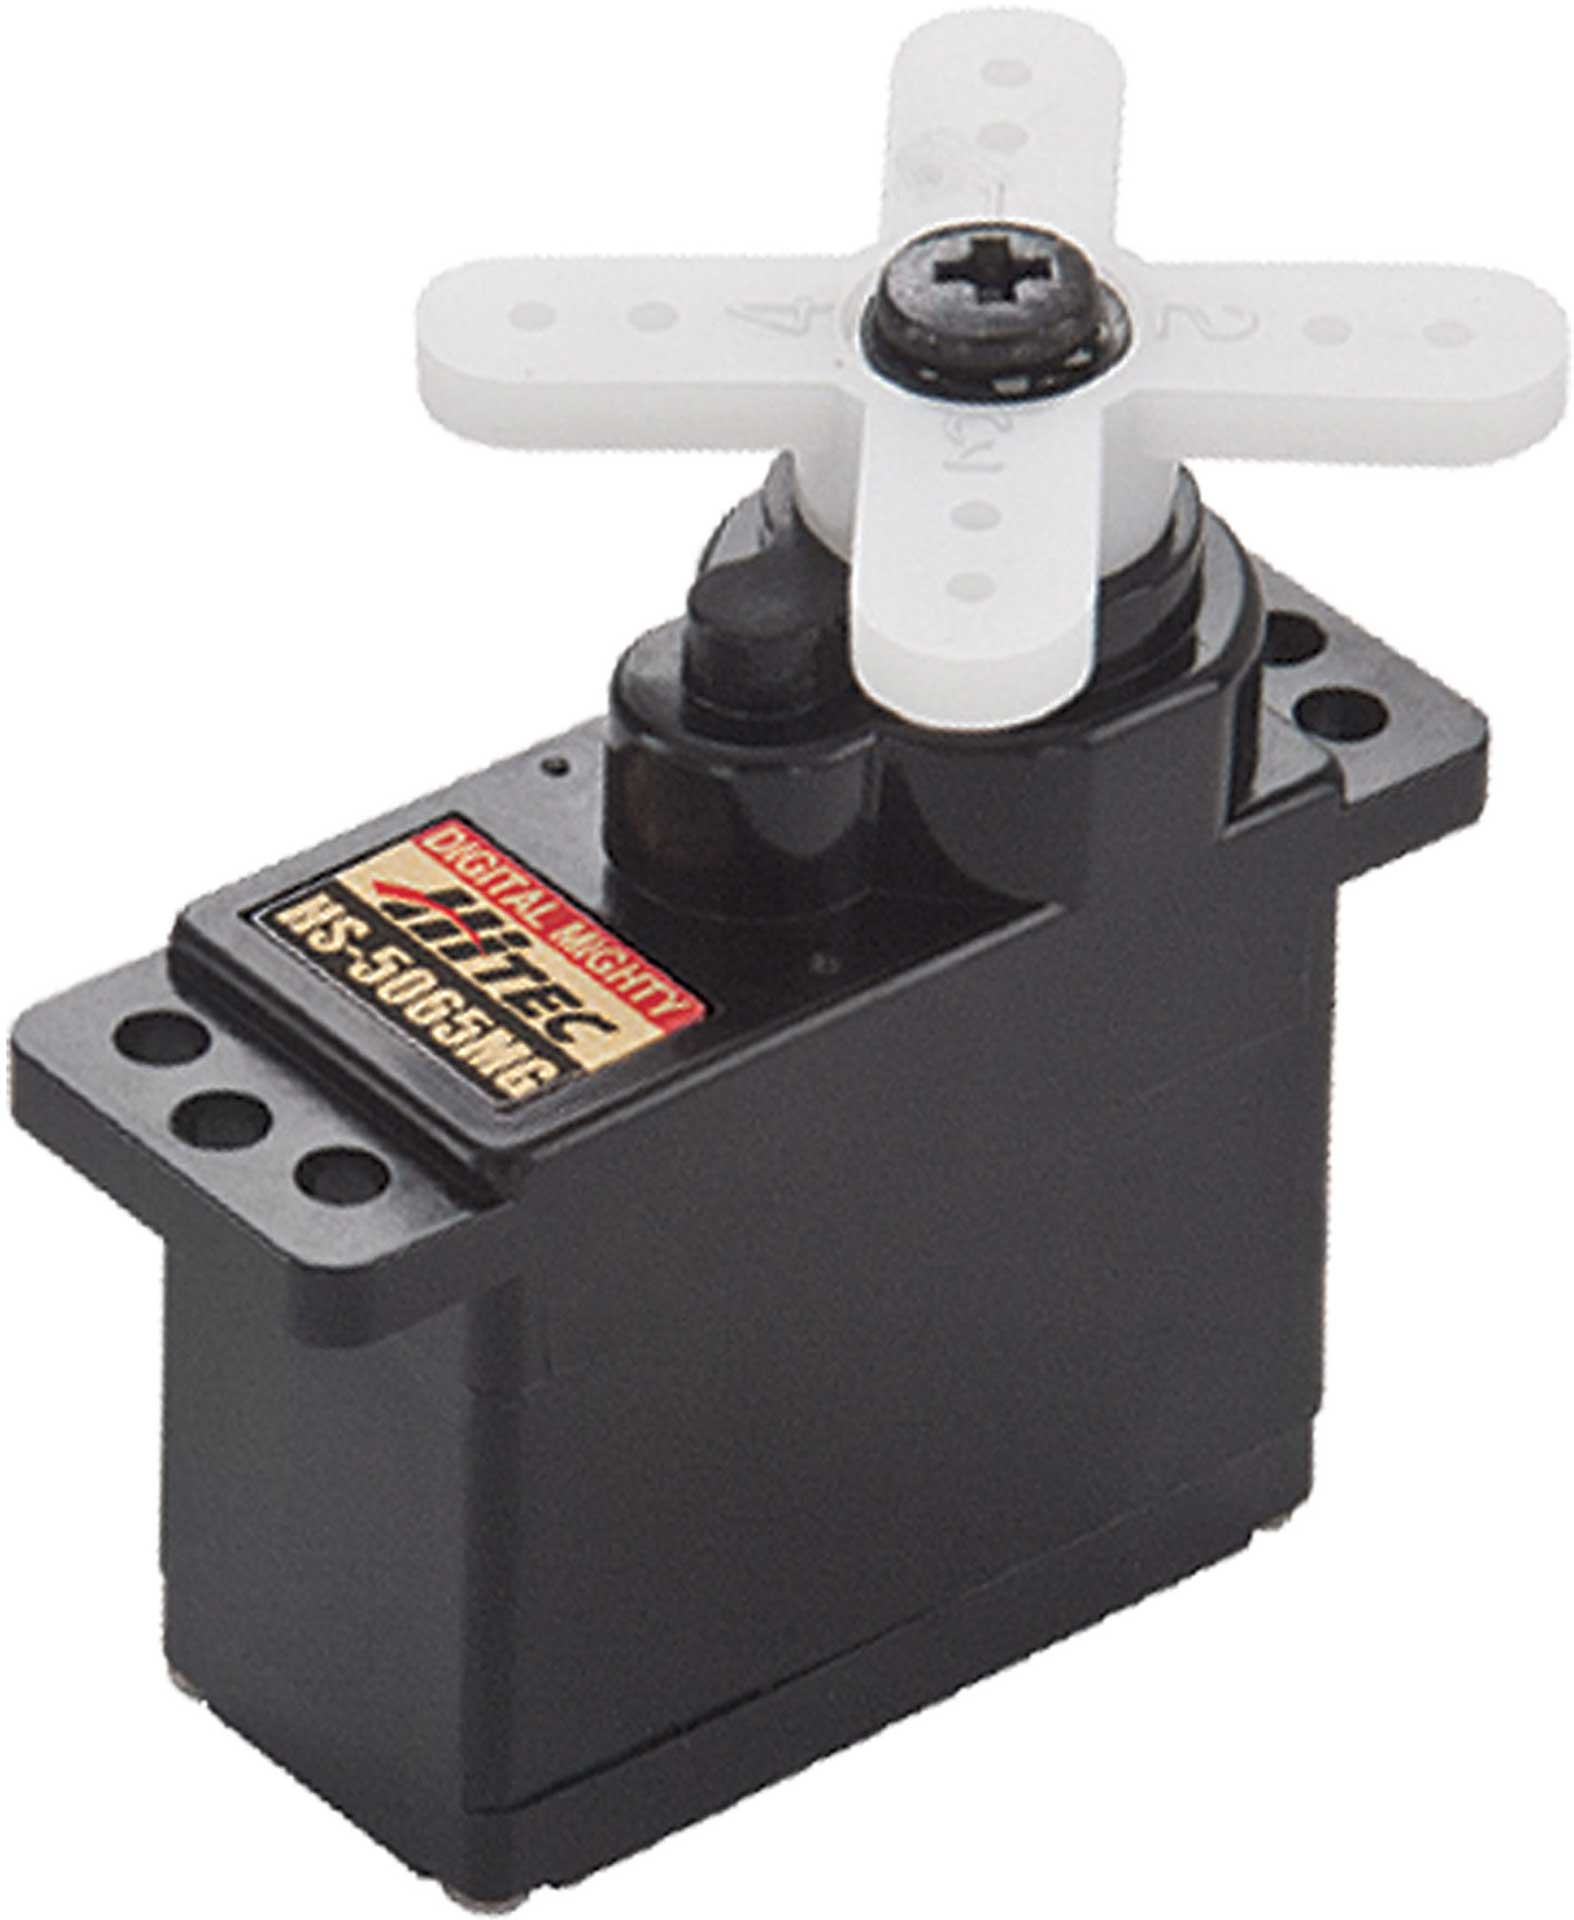 HITEC HS-5065 MG DIGITAL UNI SERVO